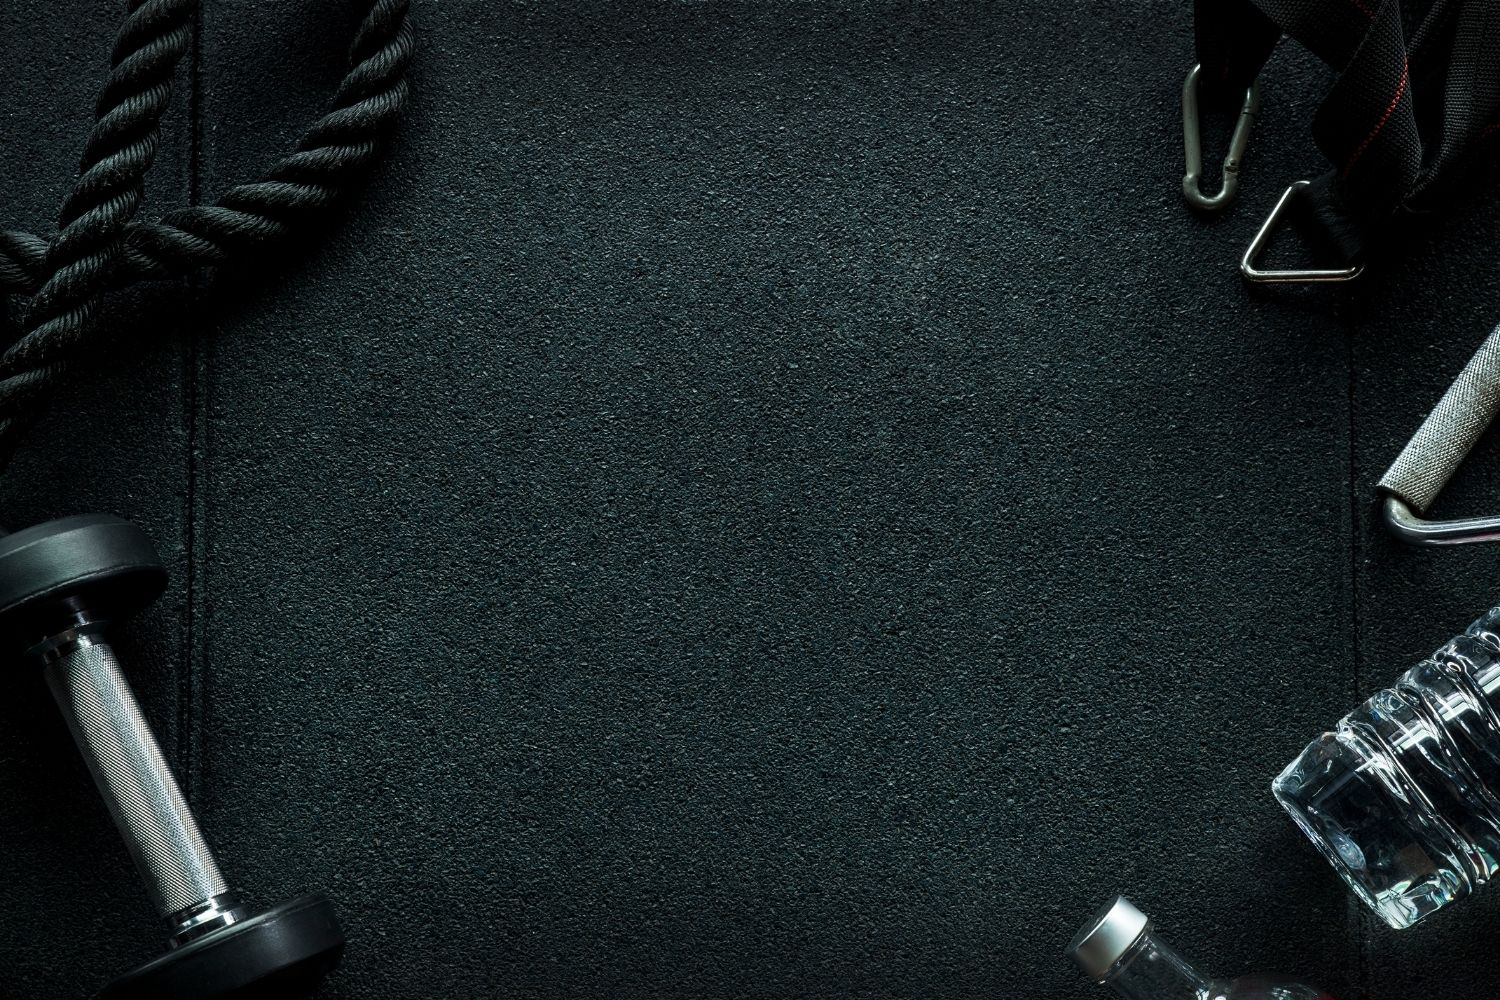 The Ultimate Guide to What Thickness You Need for Your Rubber Gym Flooring